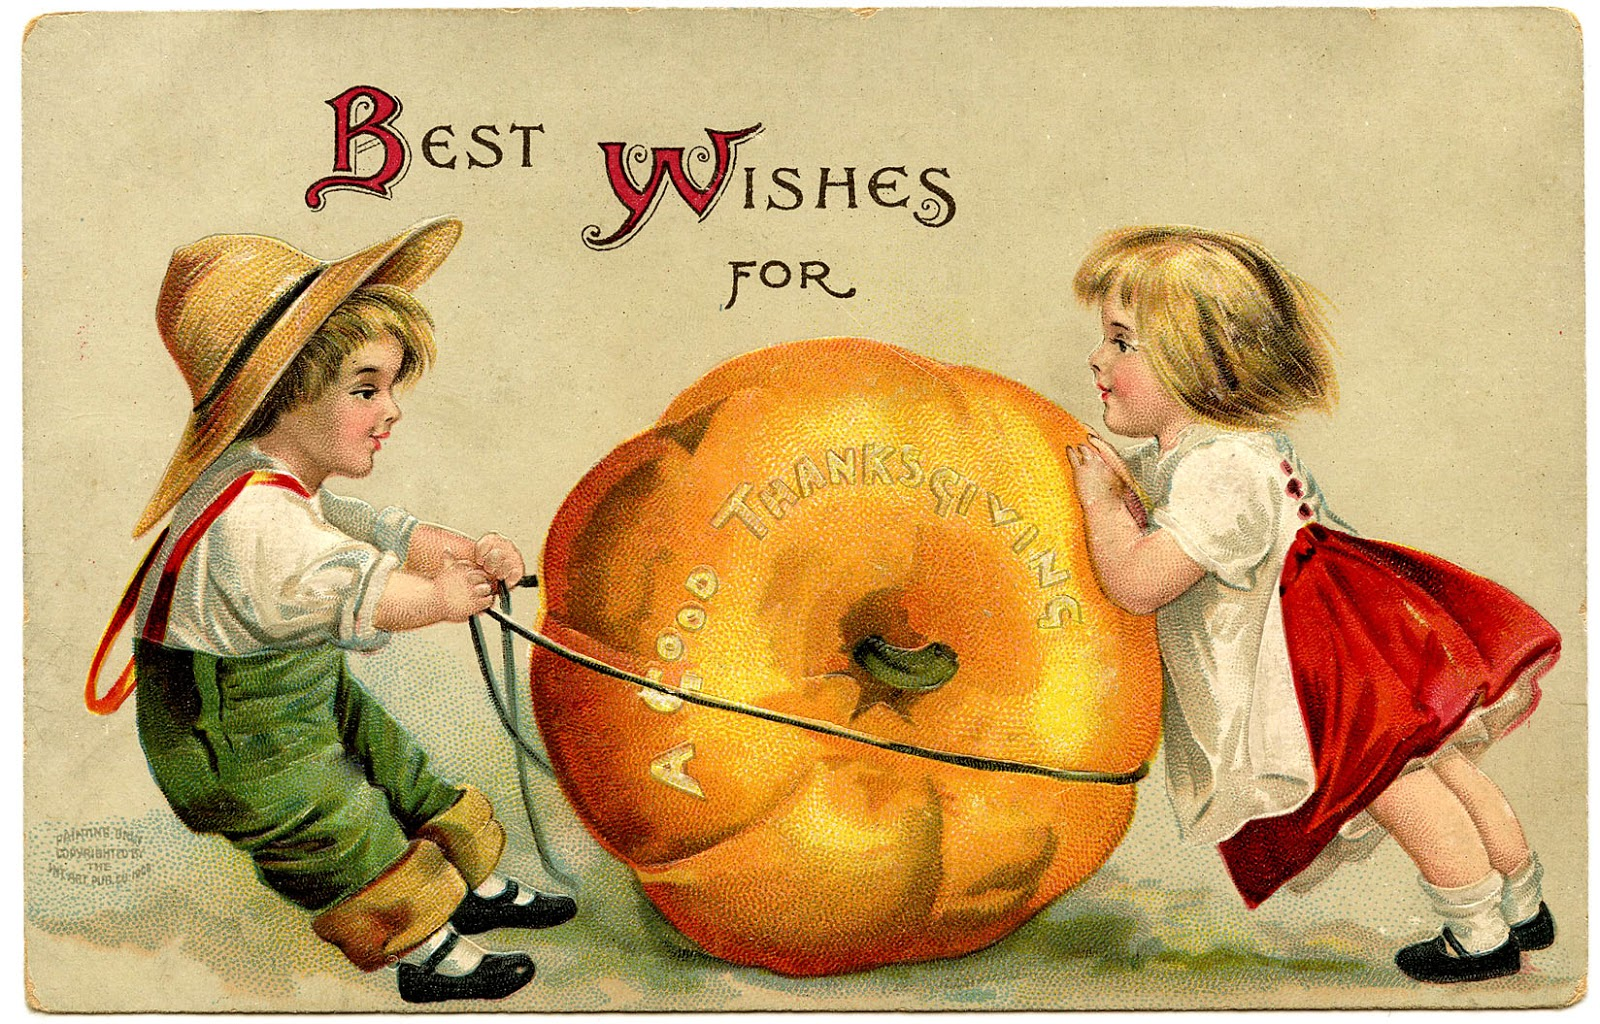 Vintage Thanksgiving Image   Cute Kids With Pumpkin   The Graphics